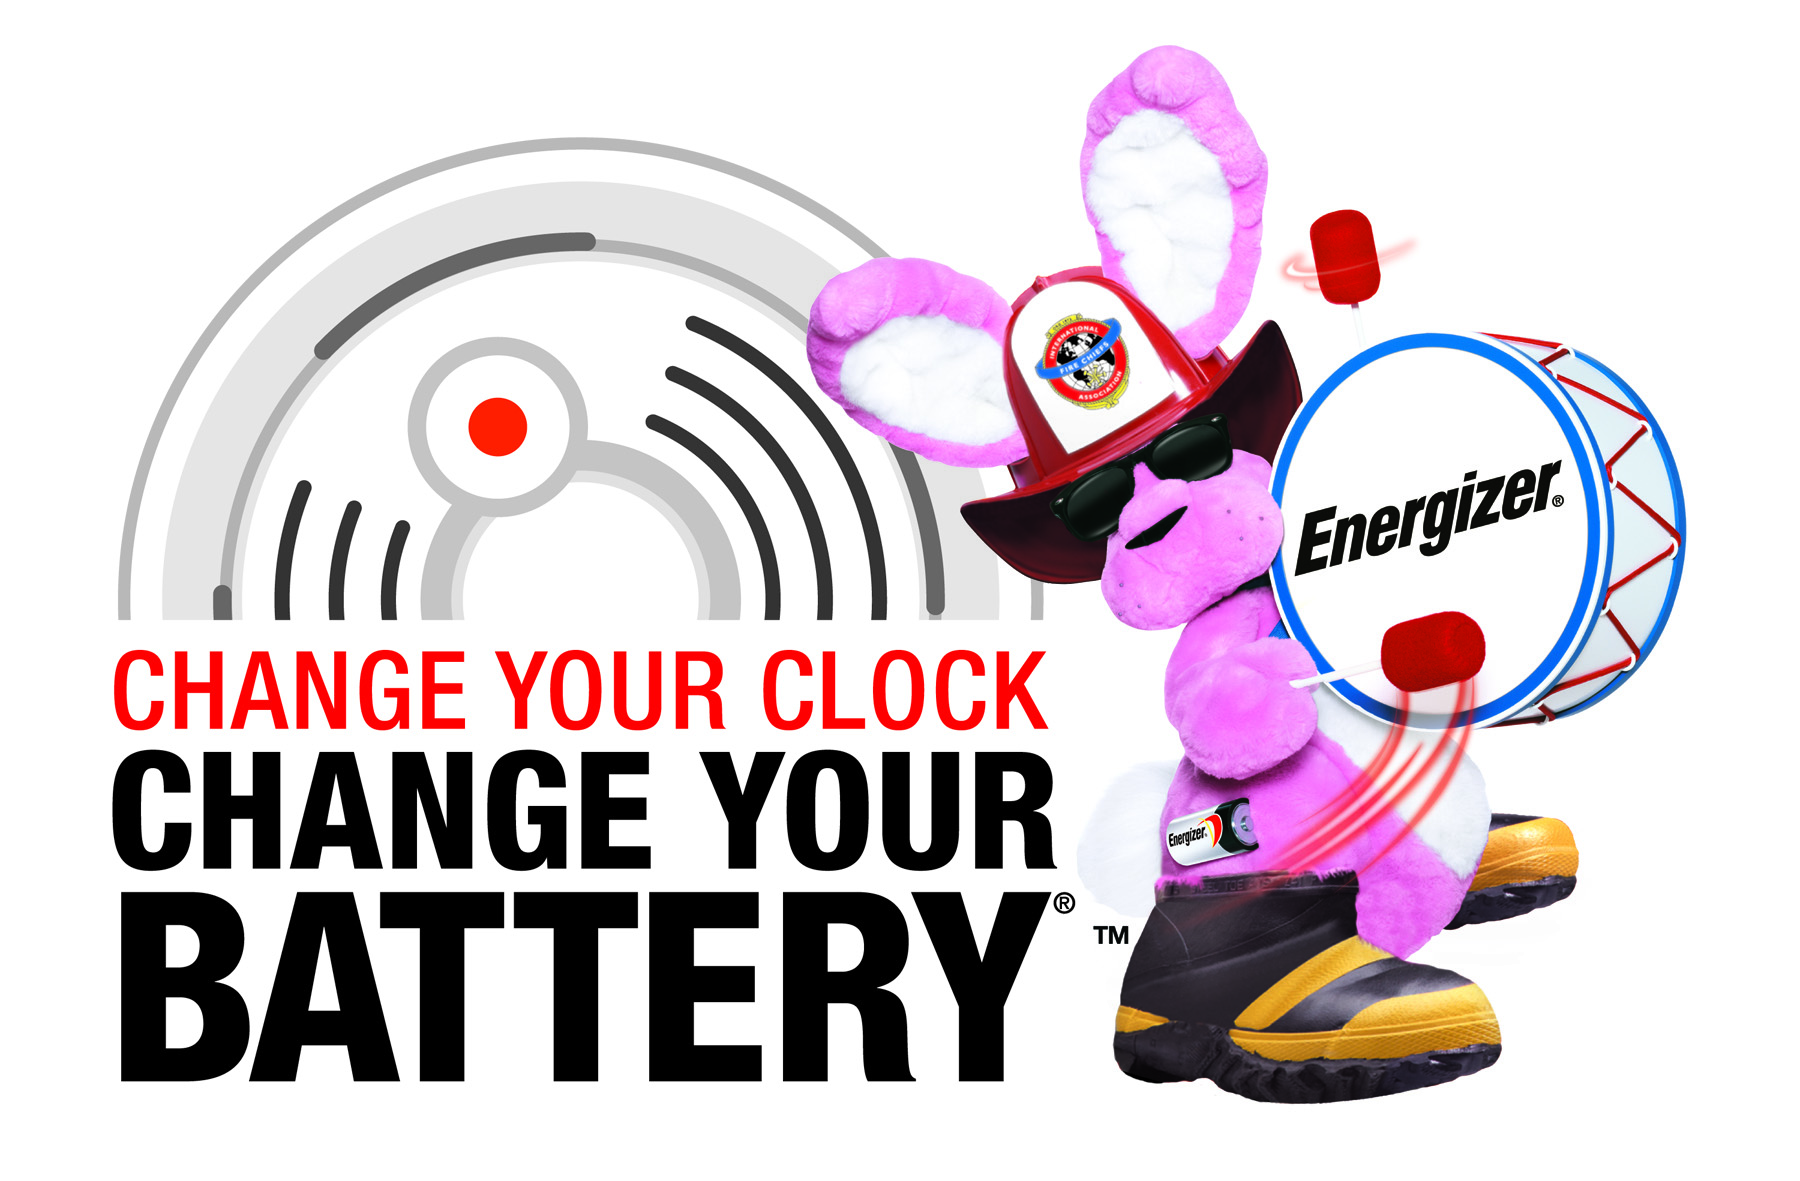 Energizer Change Your Clock Change Your Battery Giveaway